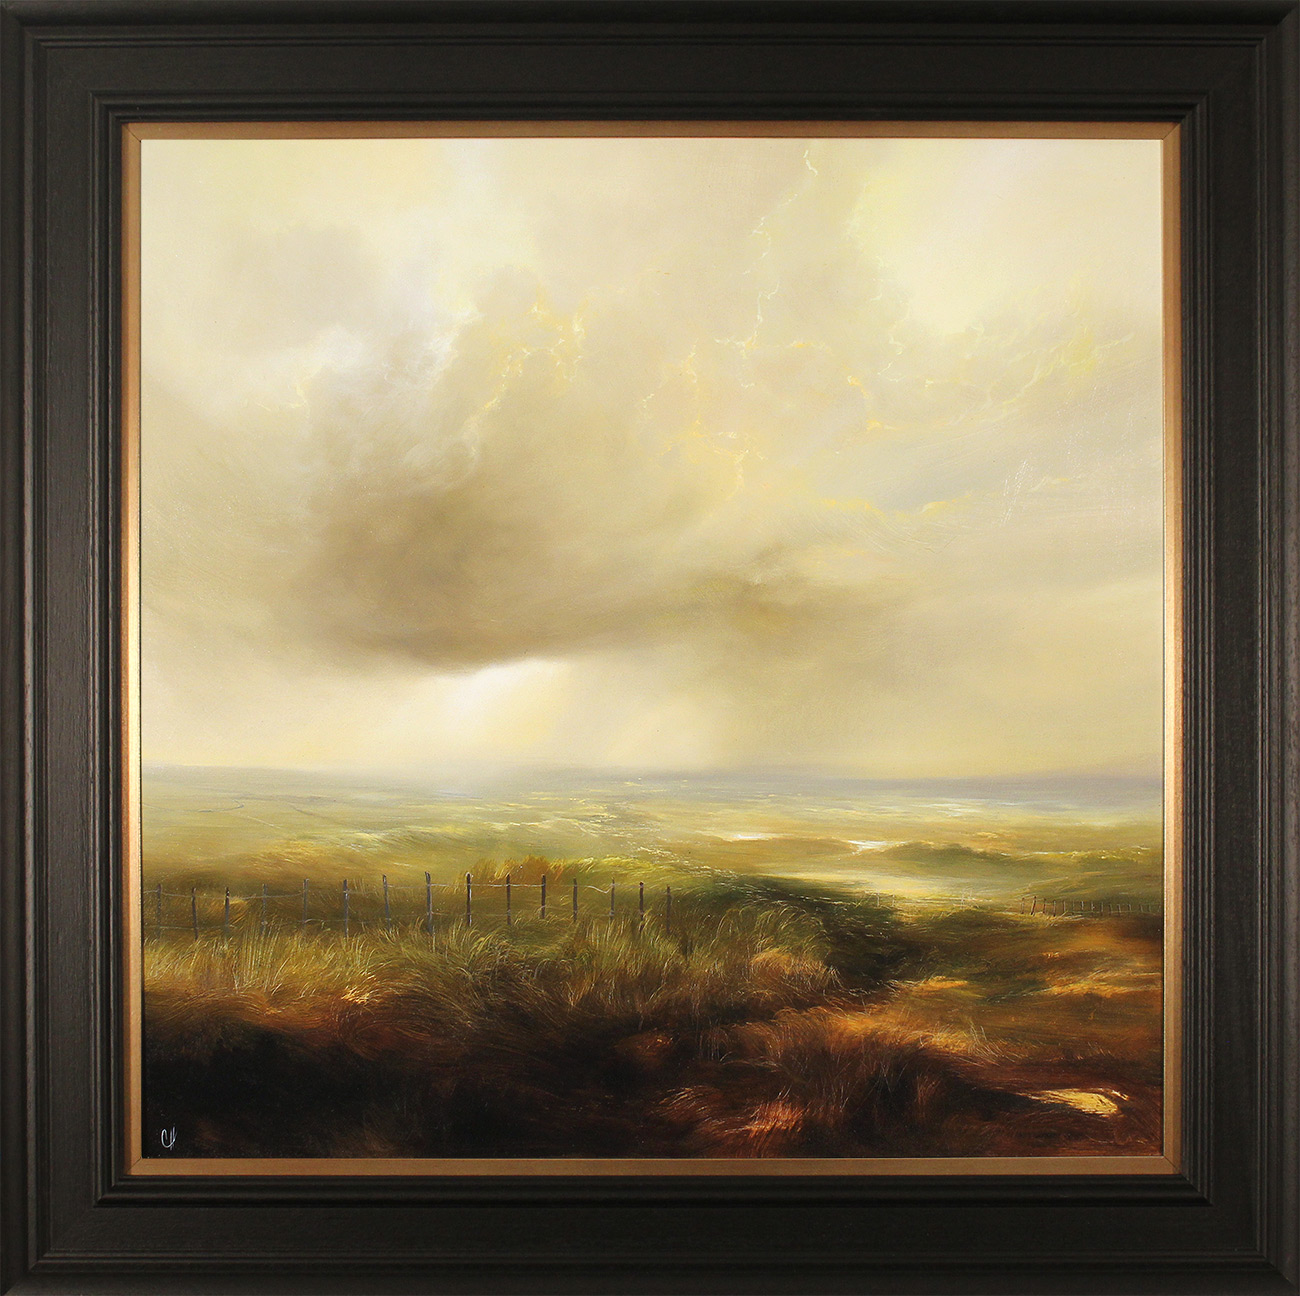 Clare Haley, Original oil painting on panel, Drifting into Moorlands, click to enlarge